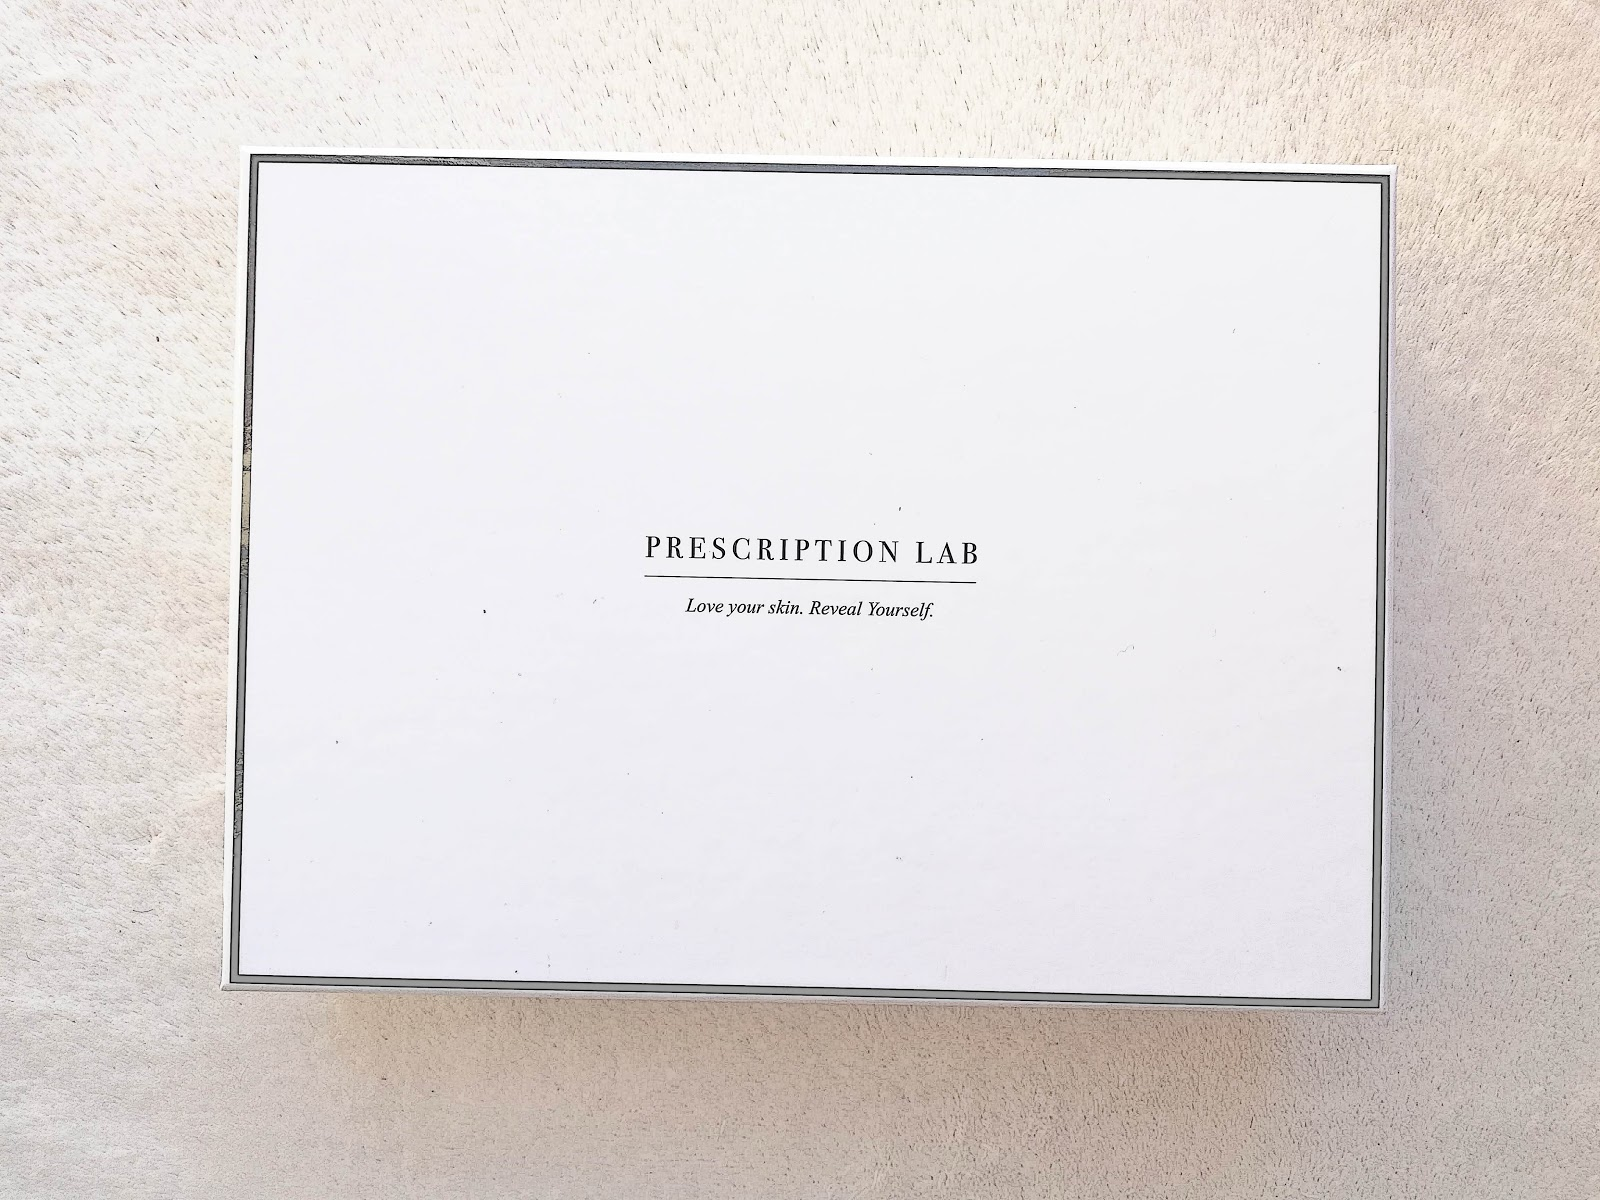 Box Prescription Lab / Janvier 2019 (+code promo)